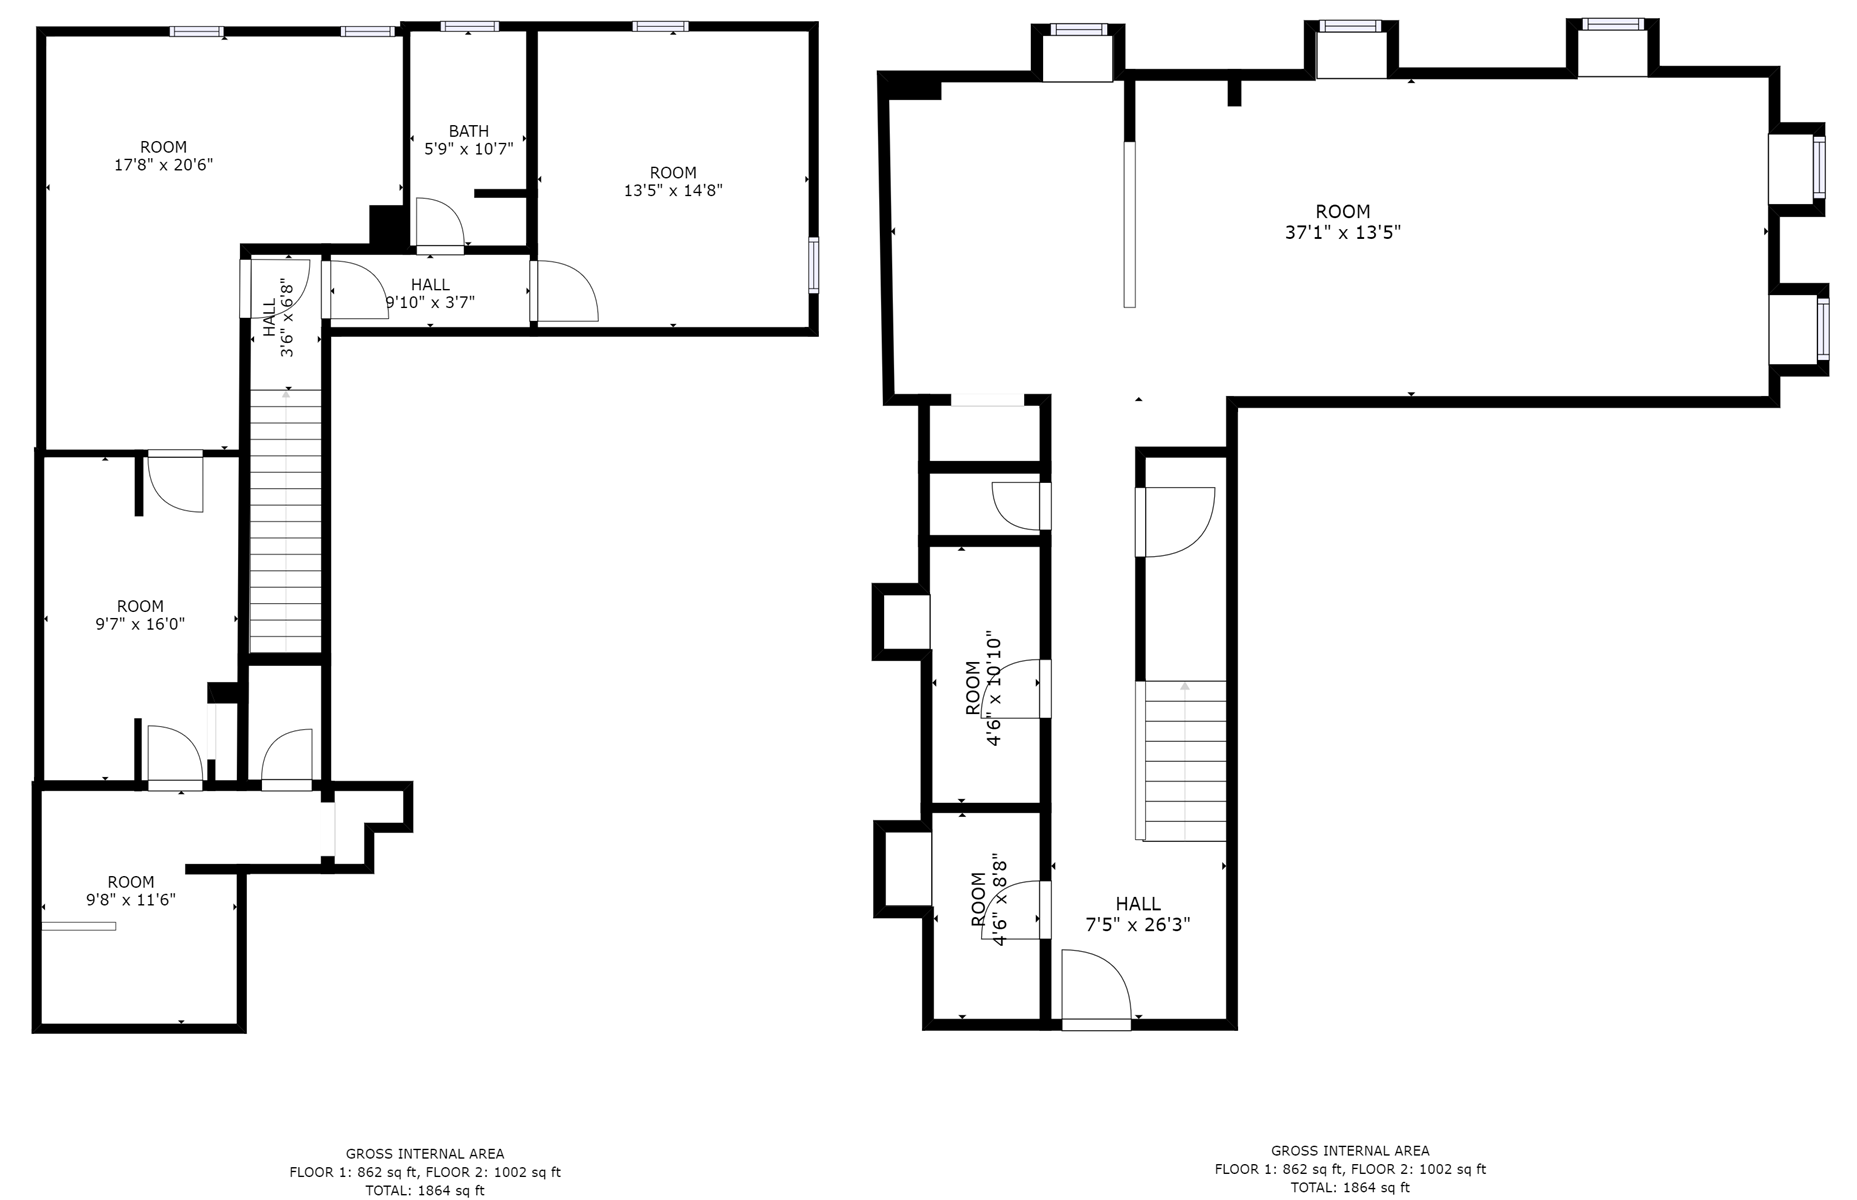 Floor Plan for Water Street Residence Unit A - 2 Bed, 2.5 Bath, Luxury Apartment